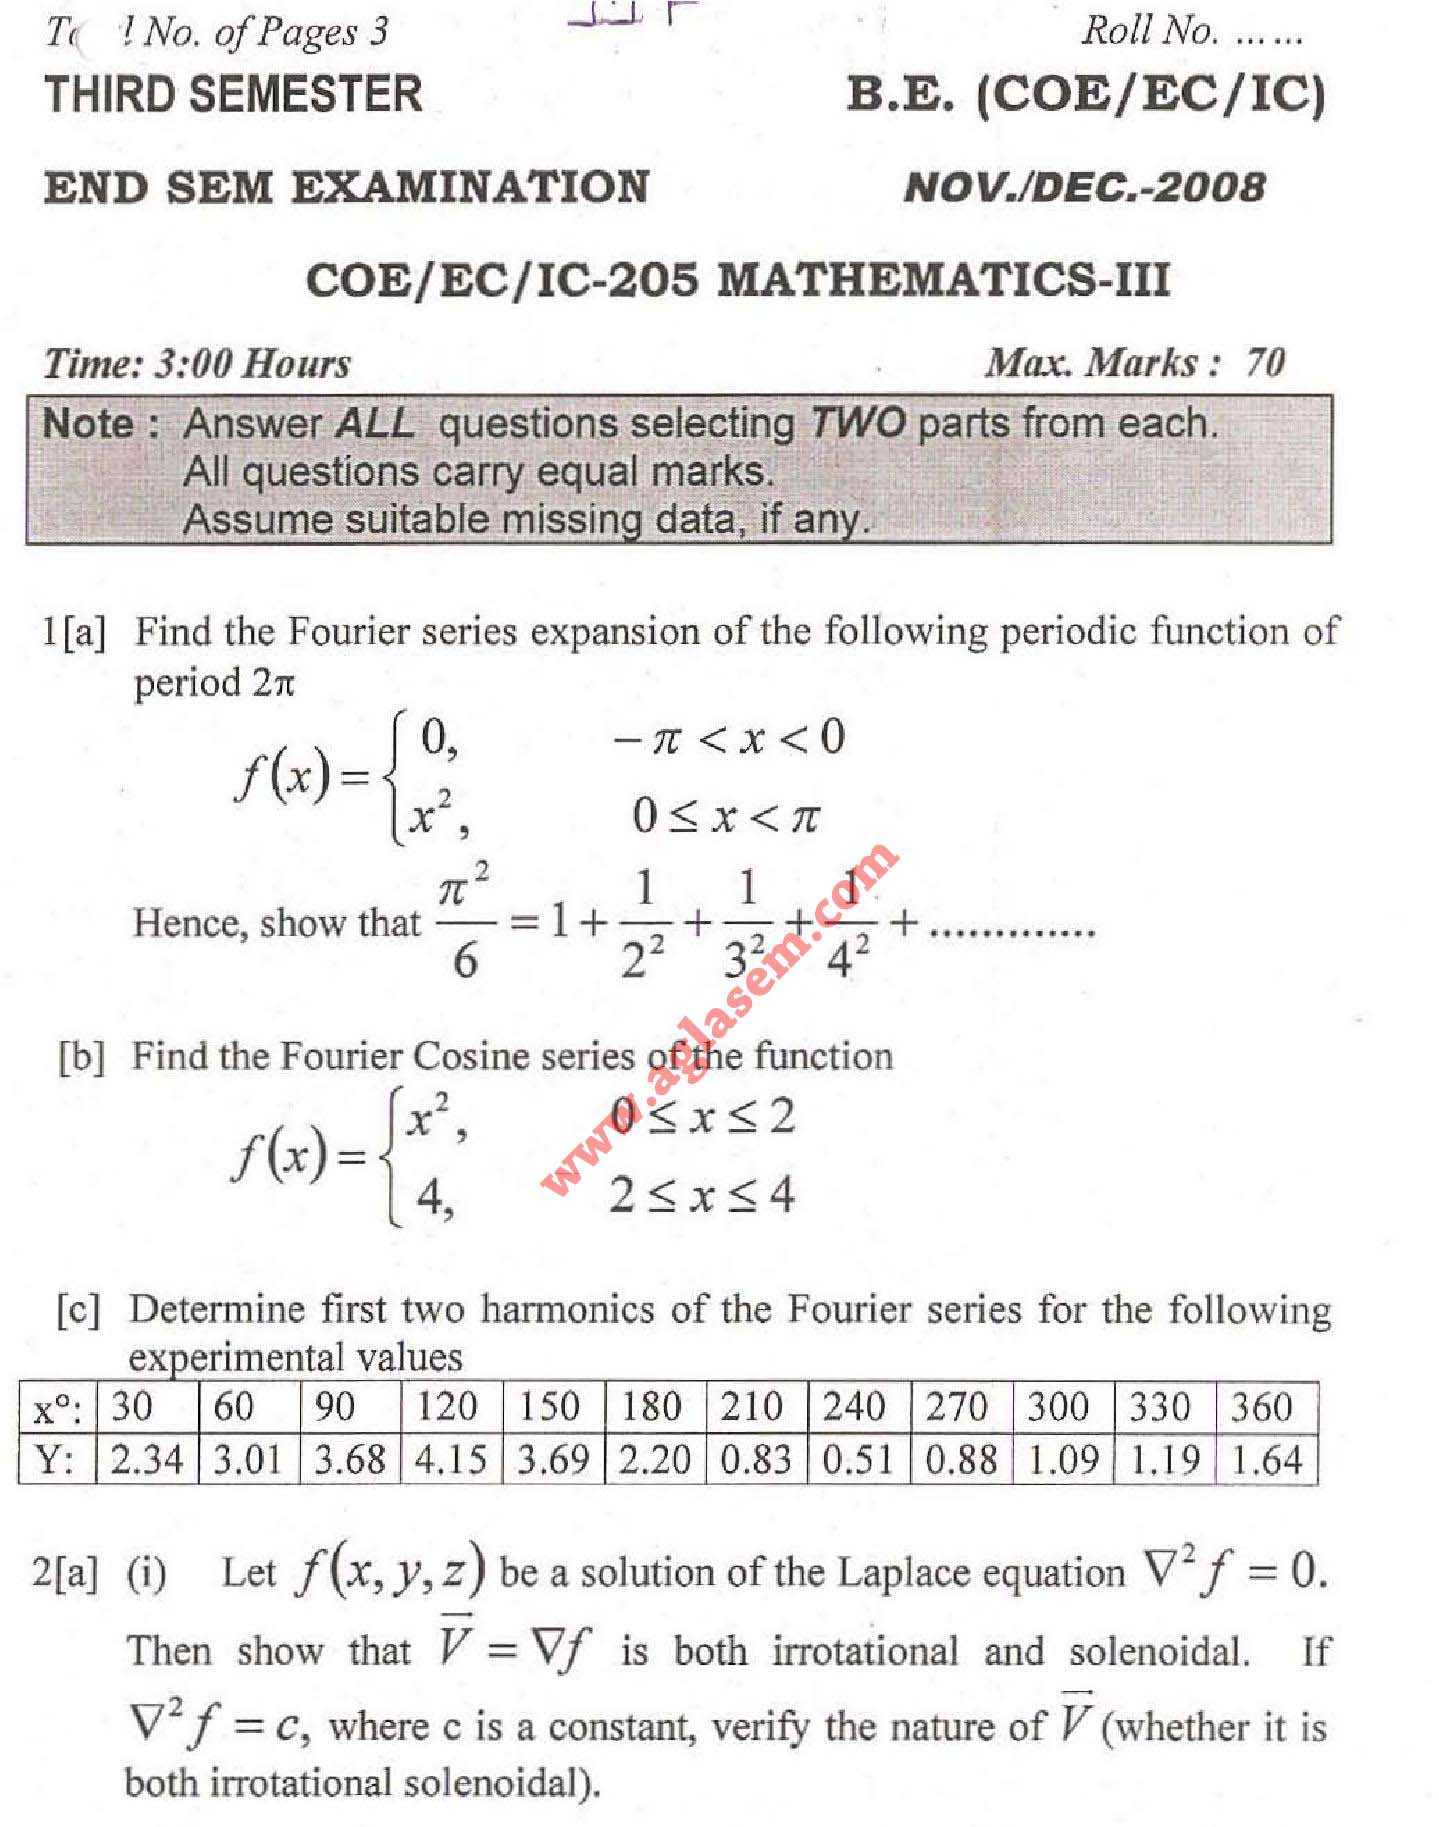 NSIT Question Papers 2008 – 3 Semester - End Sem - COE-EC-IC-205